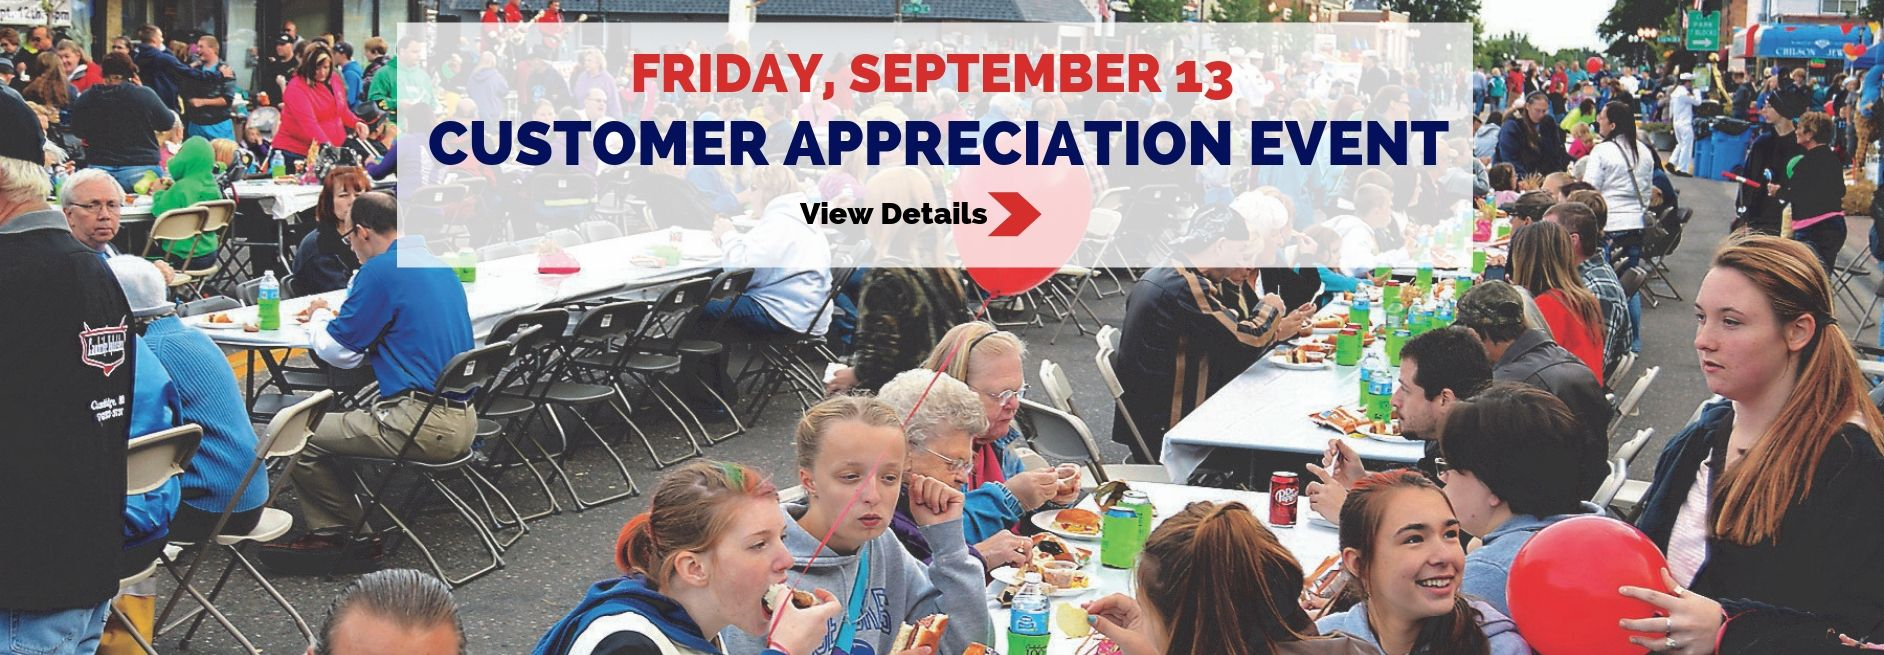 Customer Appreciation Day - September 13